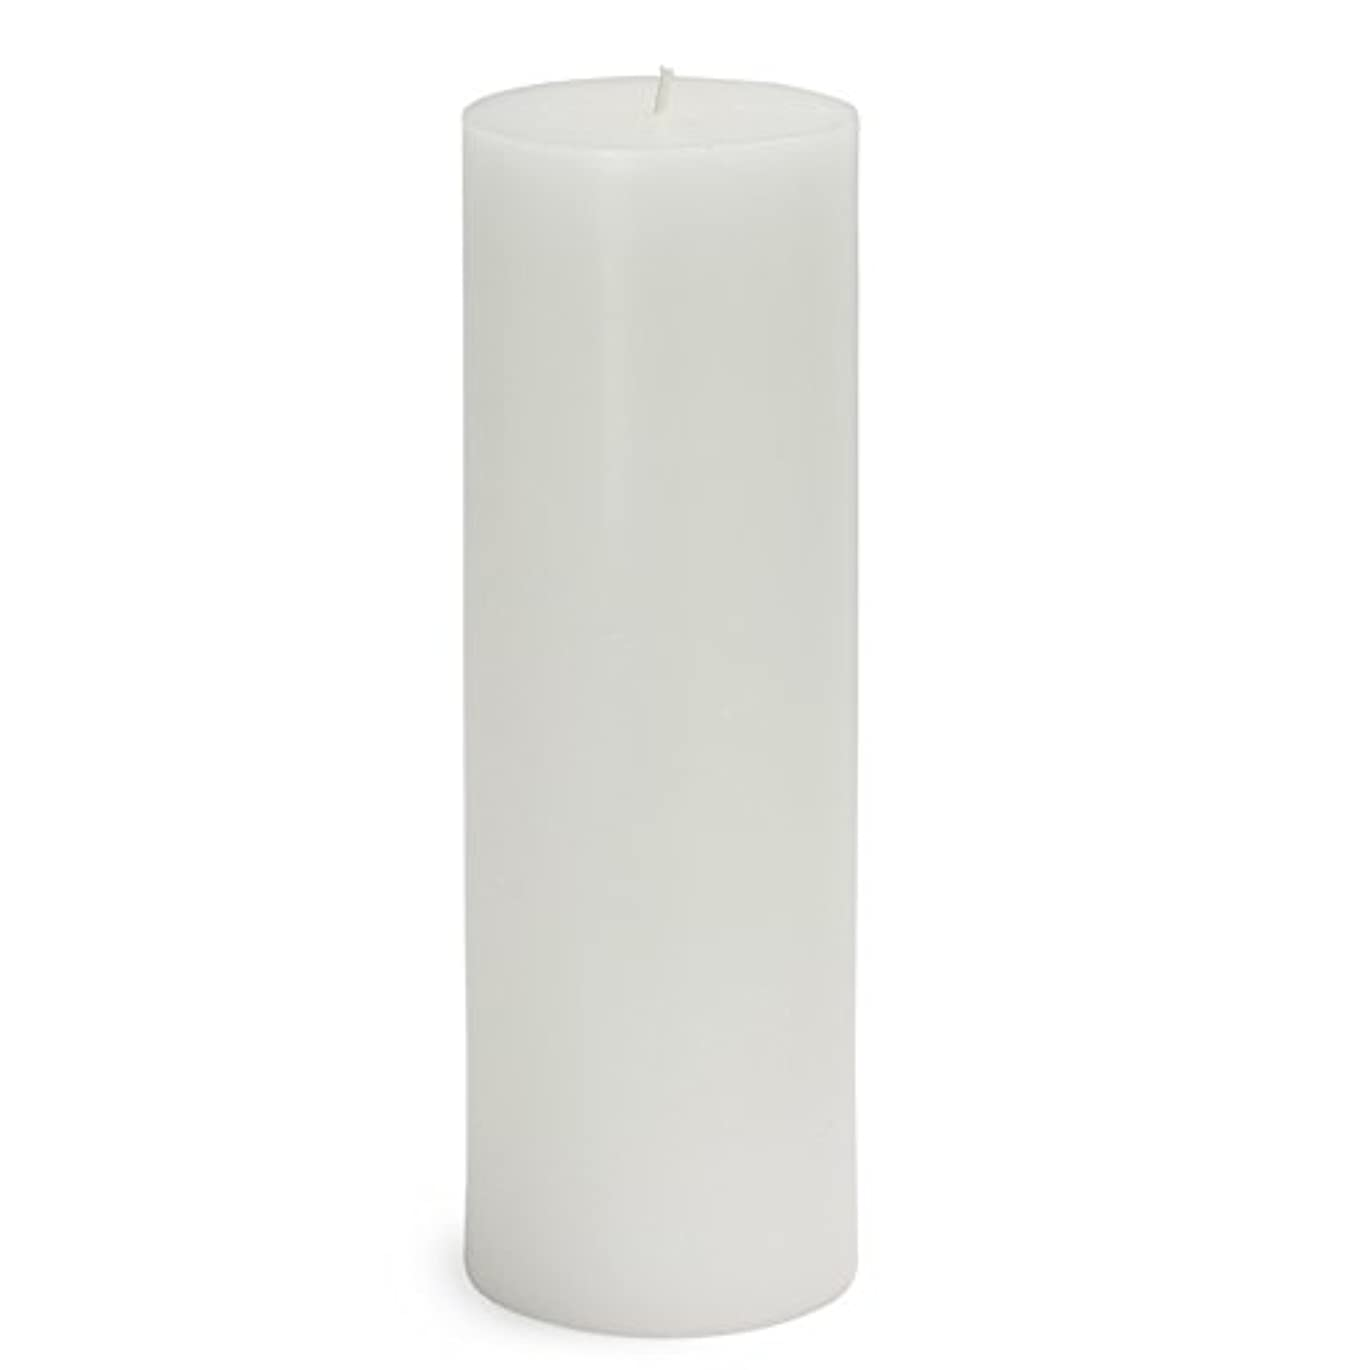 曲がった艦隊非互換Zest Candle CPZ-093-12 3 x 9 in. White Pillar Candles -12pcs-Case - Bulk